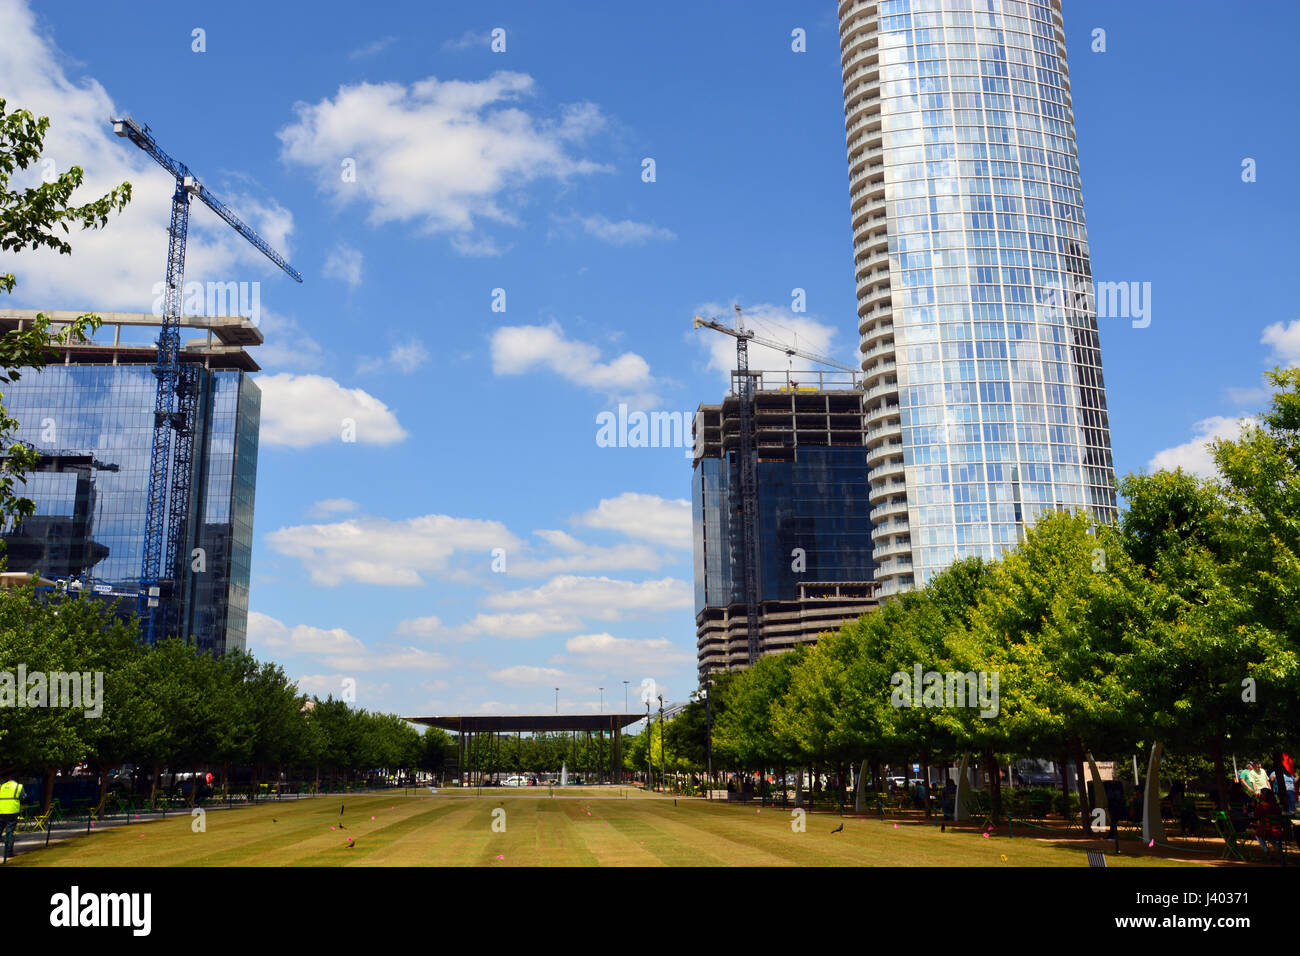 Construction cranes dominate the skyline during a building boom of new apartments and offices in downtown Dallas - Stock Image